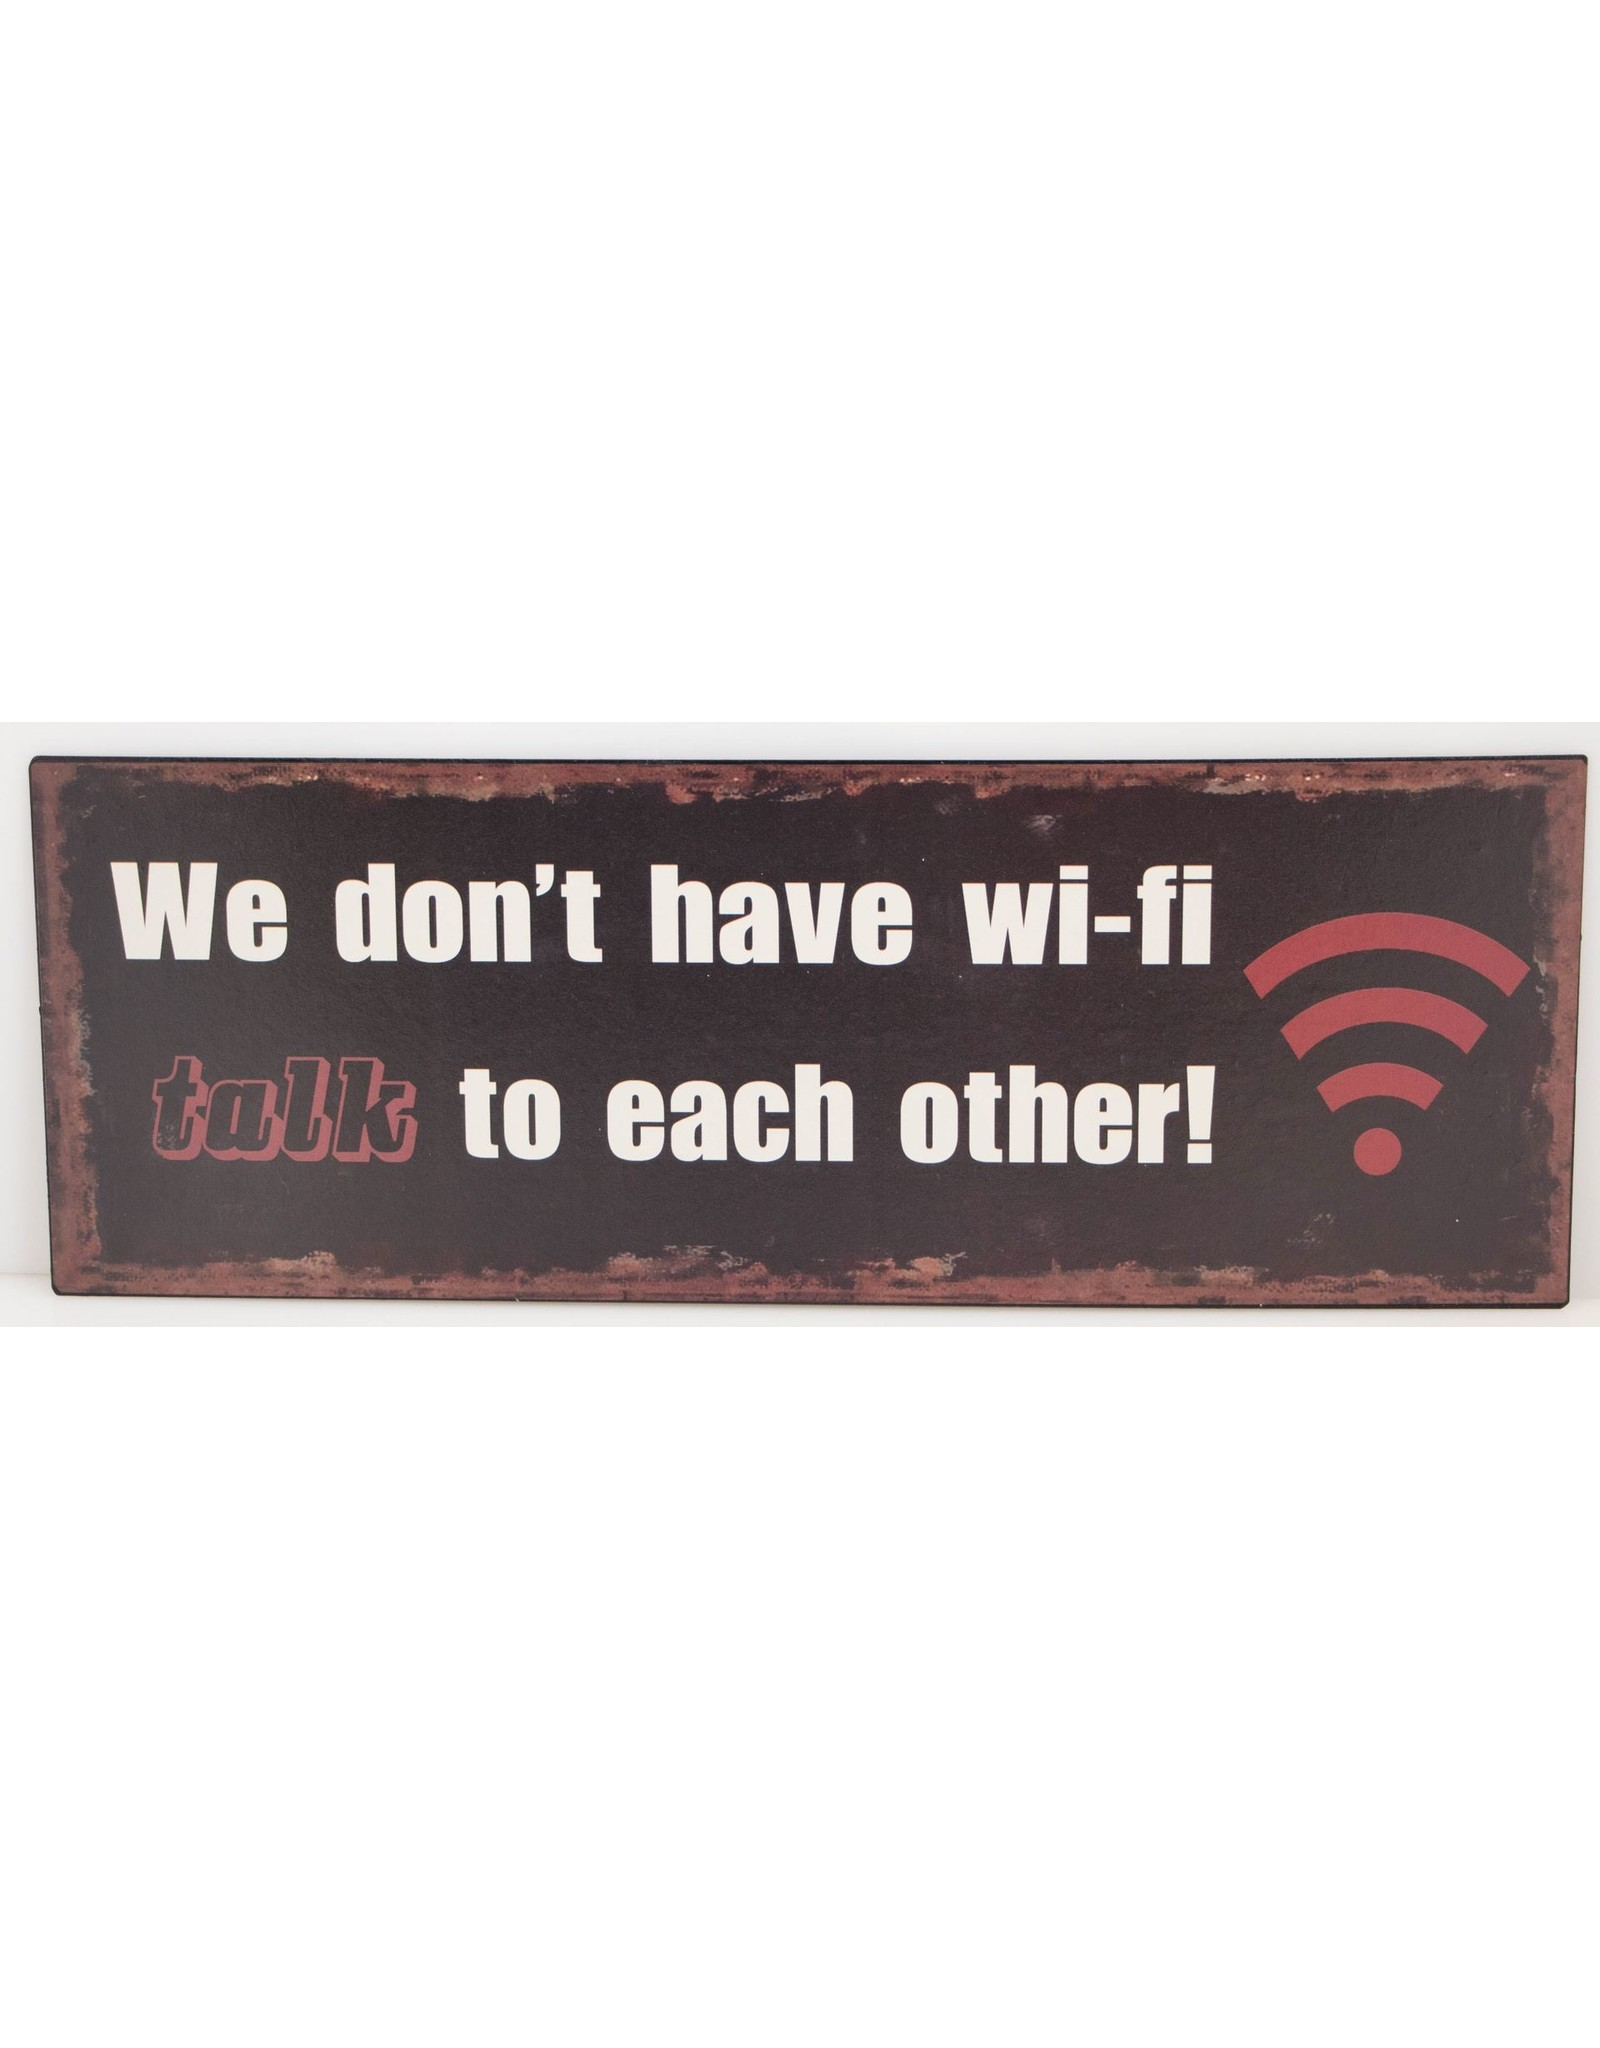 We don't have wifi